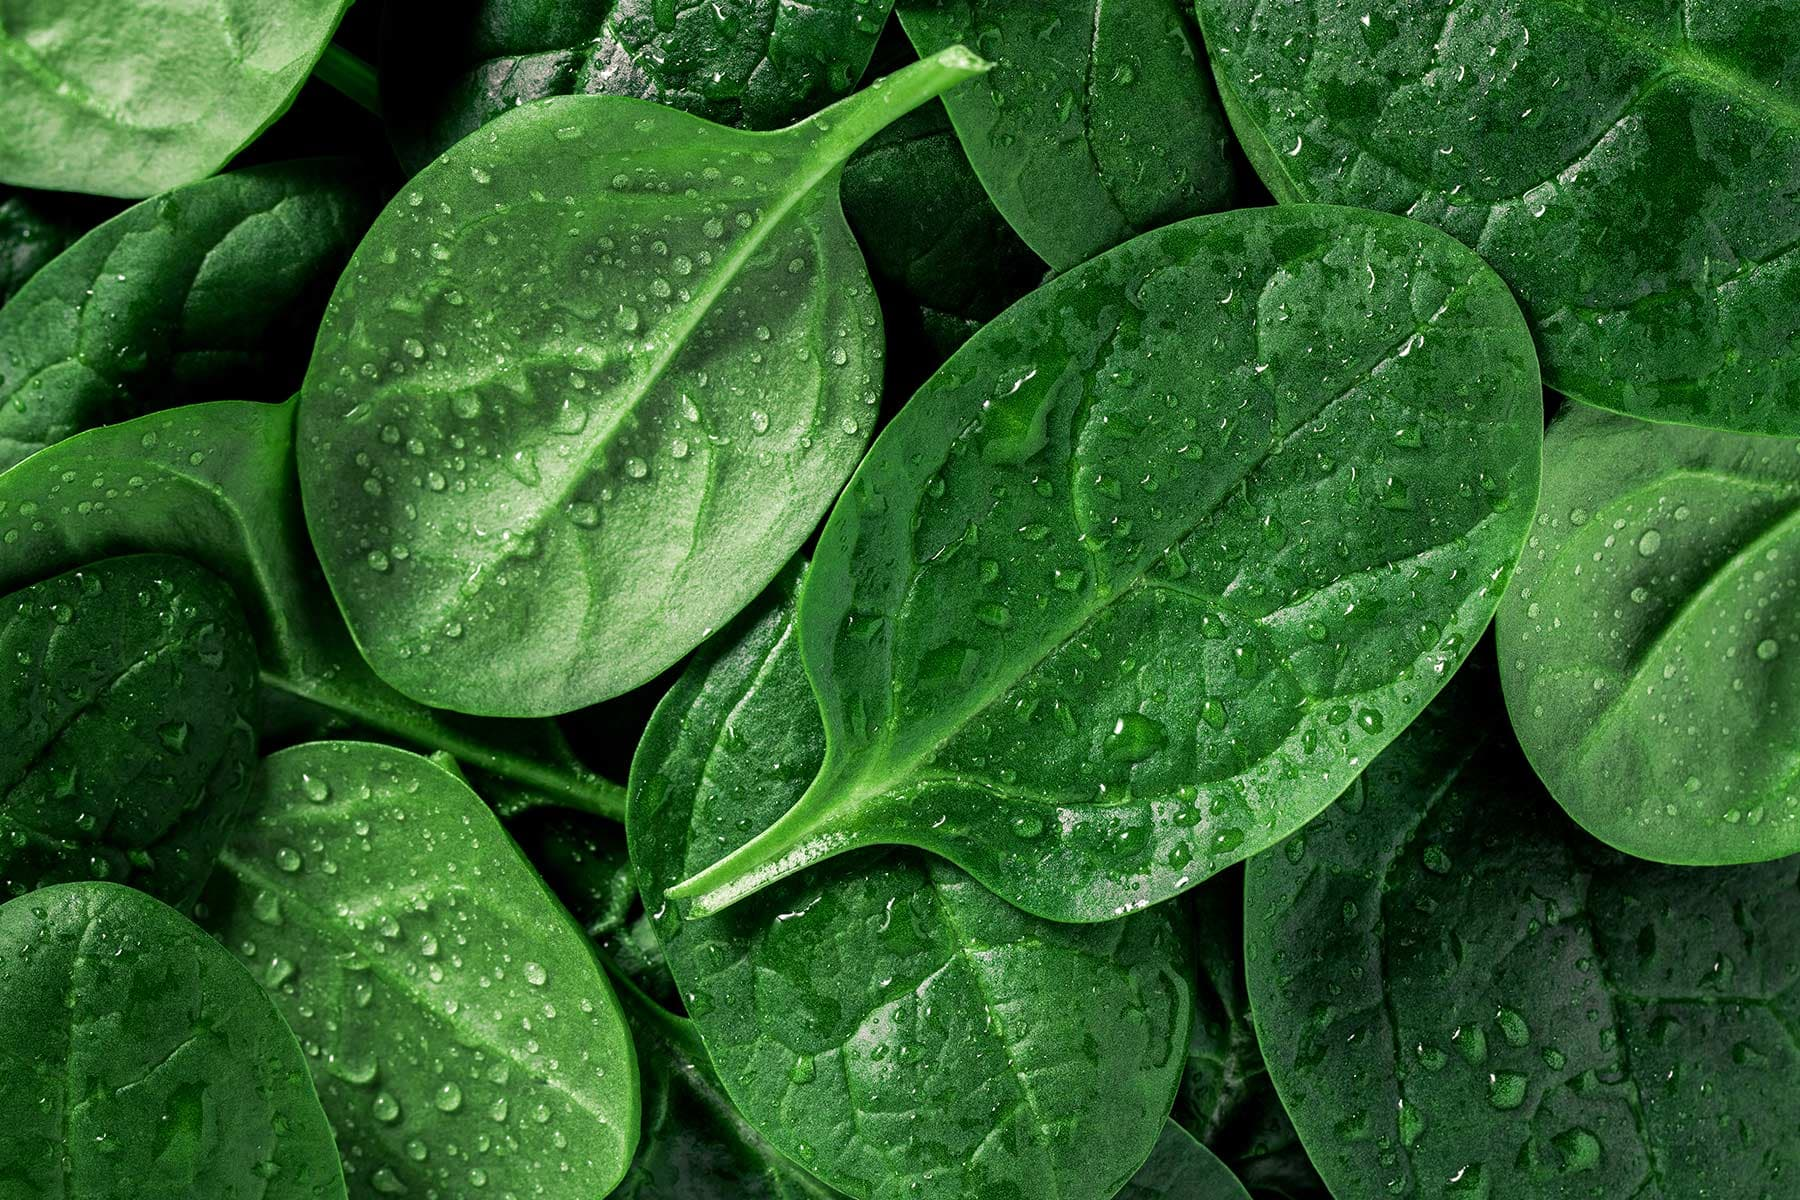 Spinach, the leafy green superfood